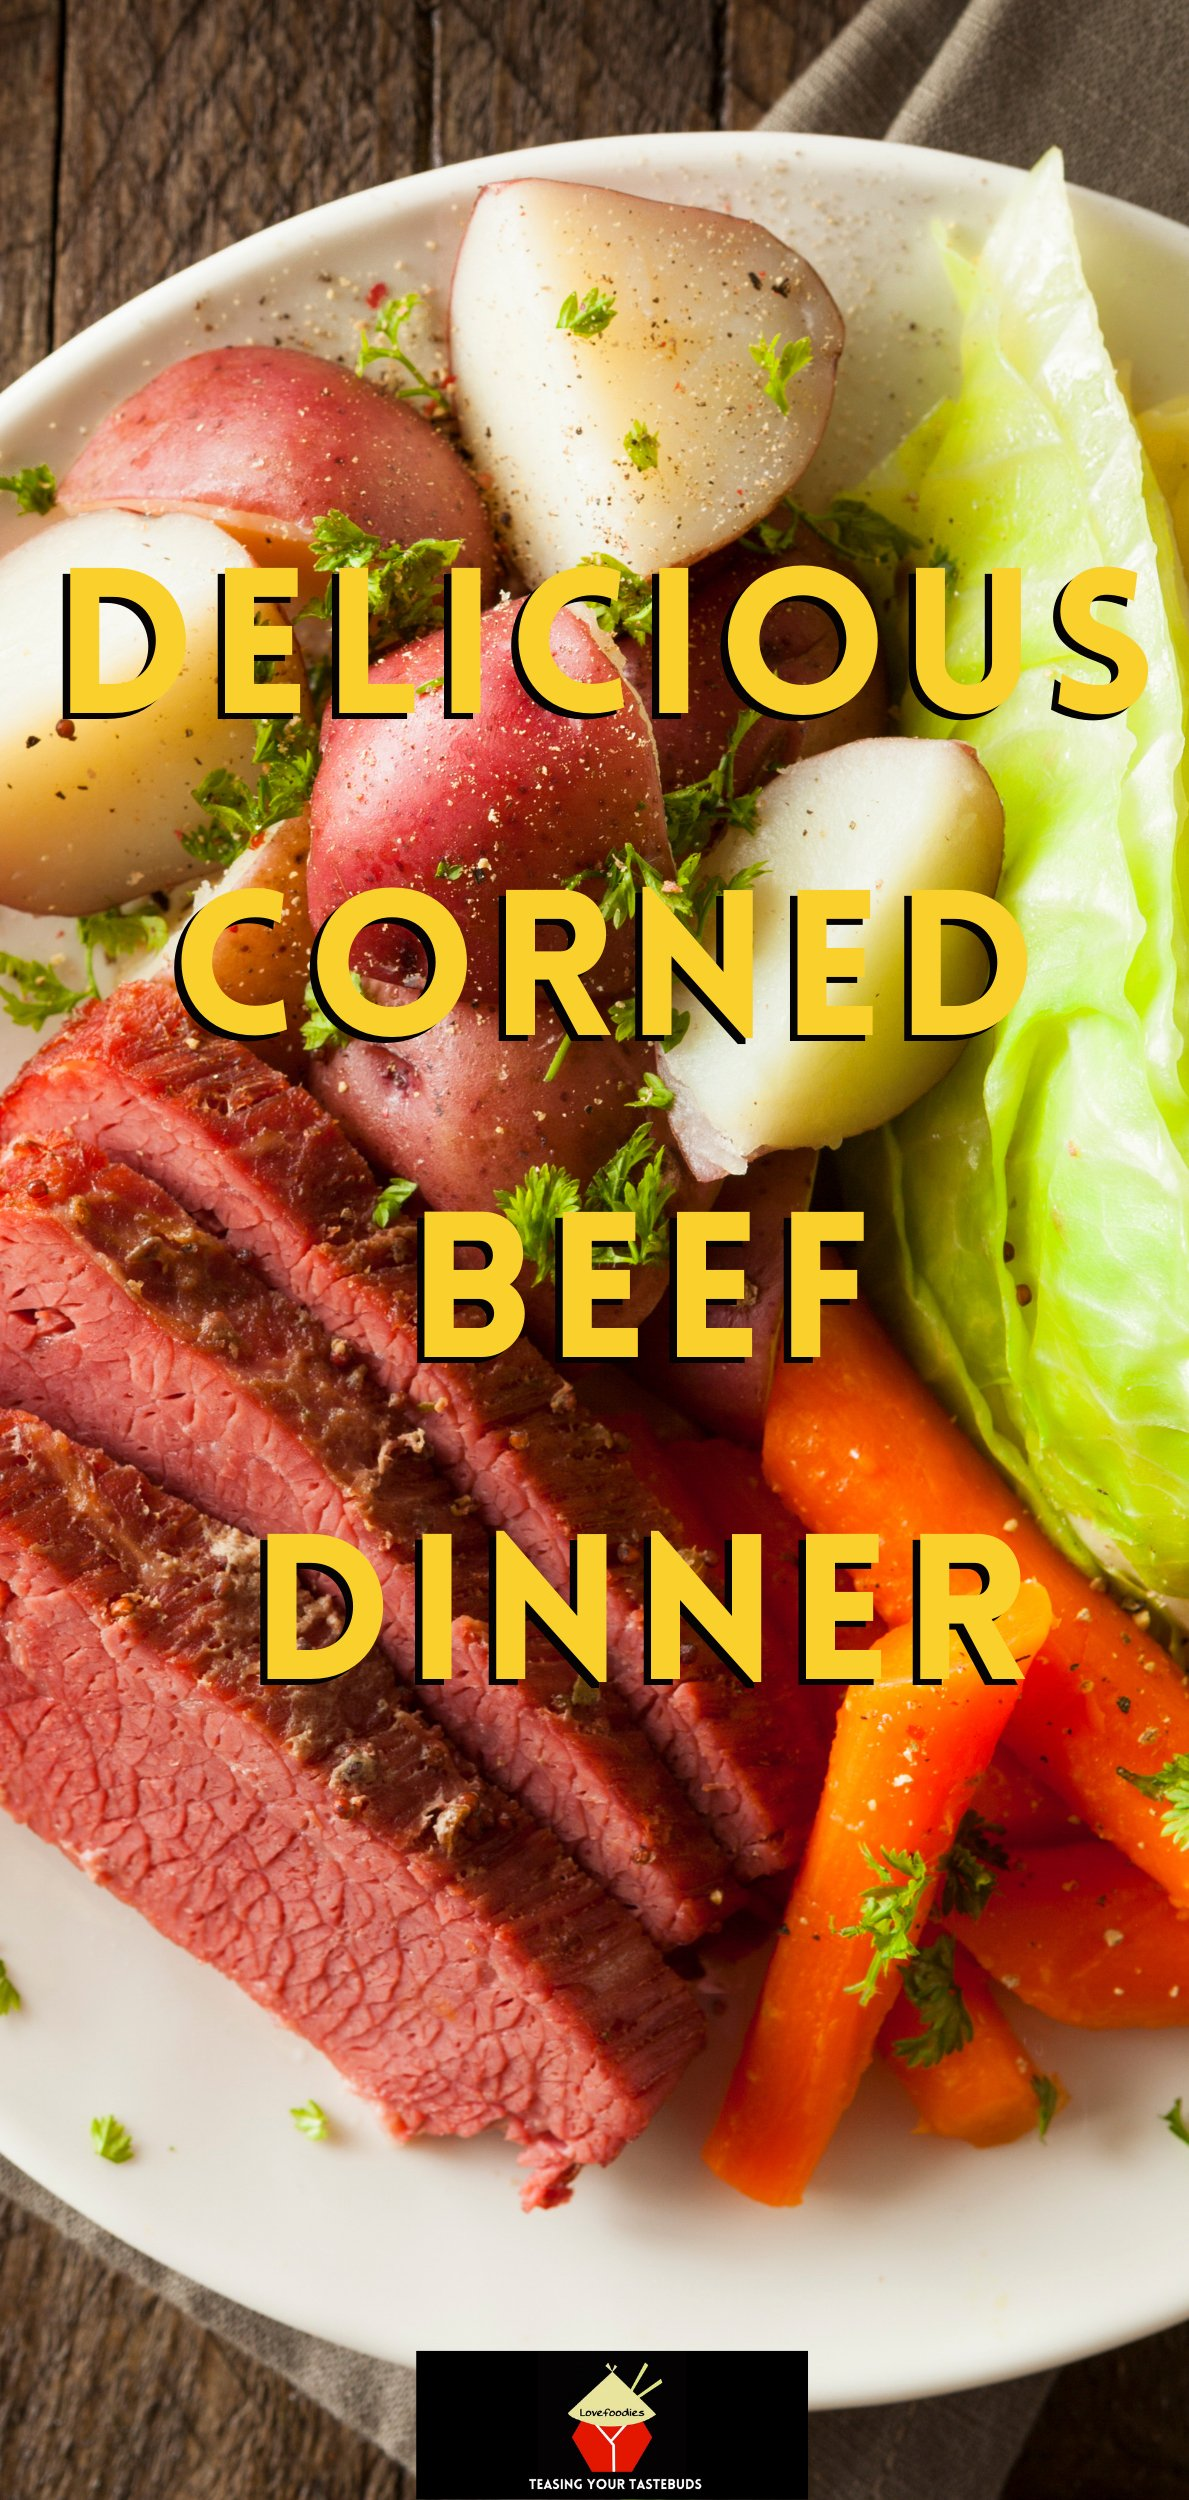 Delicious Corned Beef Dinner. A very easy recipe for stovetop, oven, or slow cooker, you choose! Perfect for St Patrick's Day or Easter